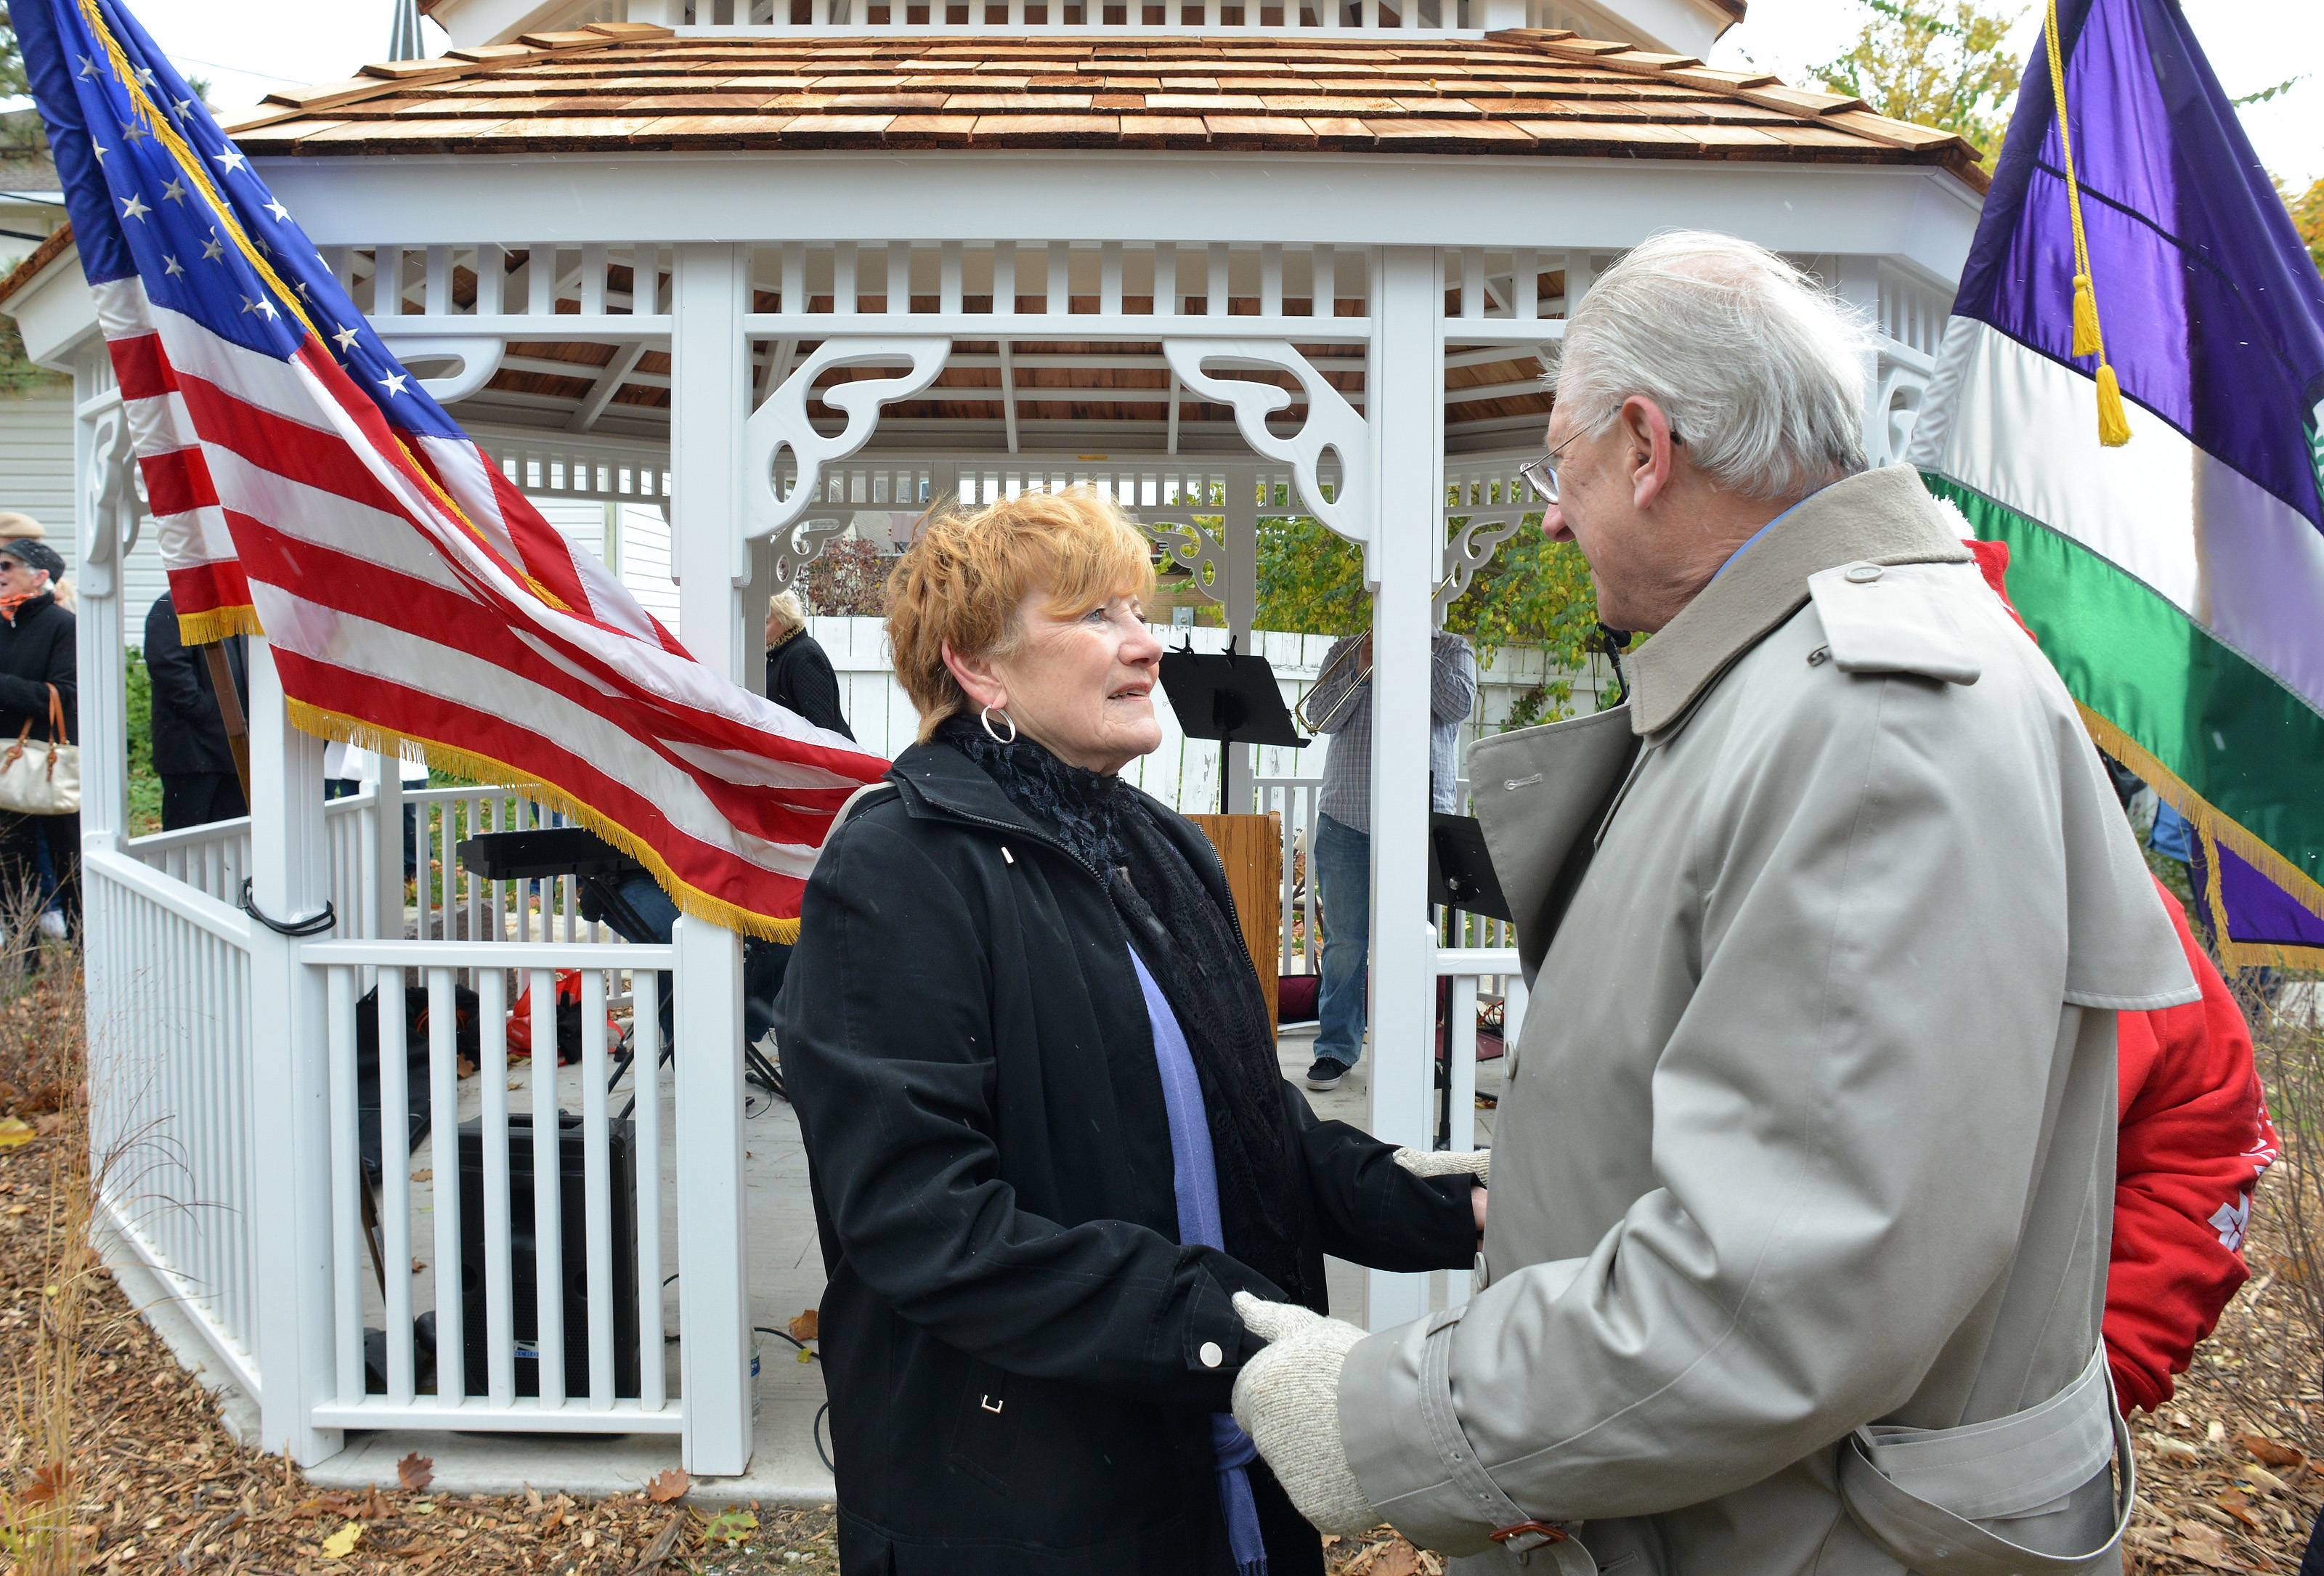 Lombardians cheer gazebo honoring late village president